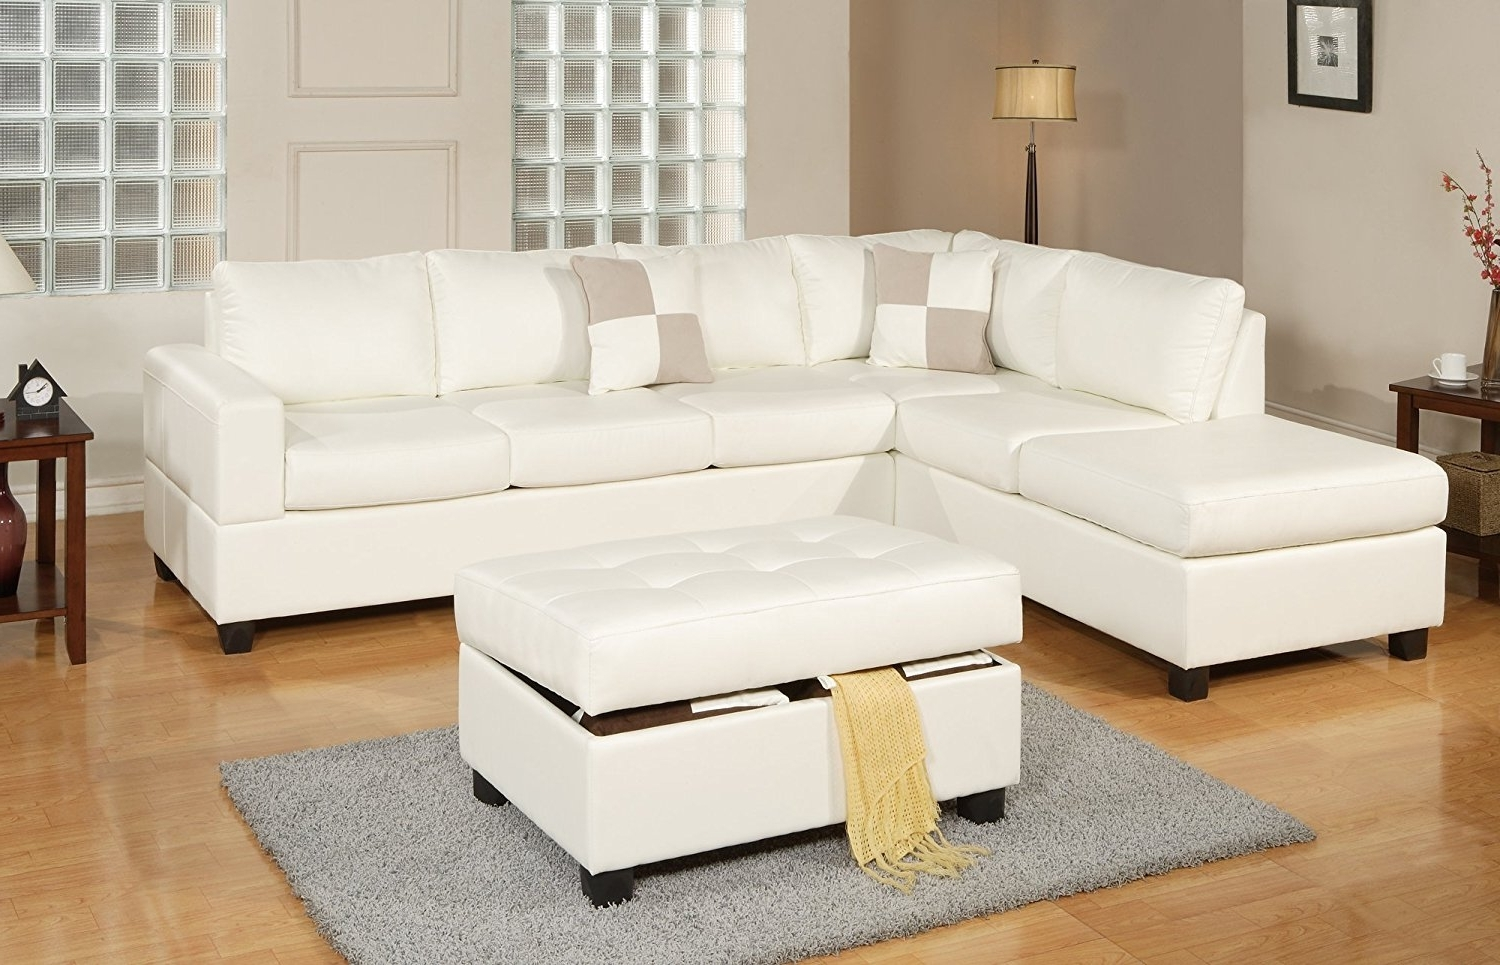 Leather Sectionals With Ottoman With Well Known Amazon: Bobkona Soft Touch Reversible Bonded Leather Match  (View 7 of 15)